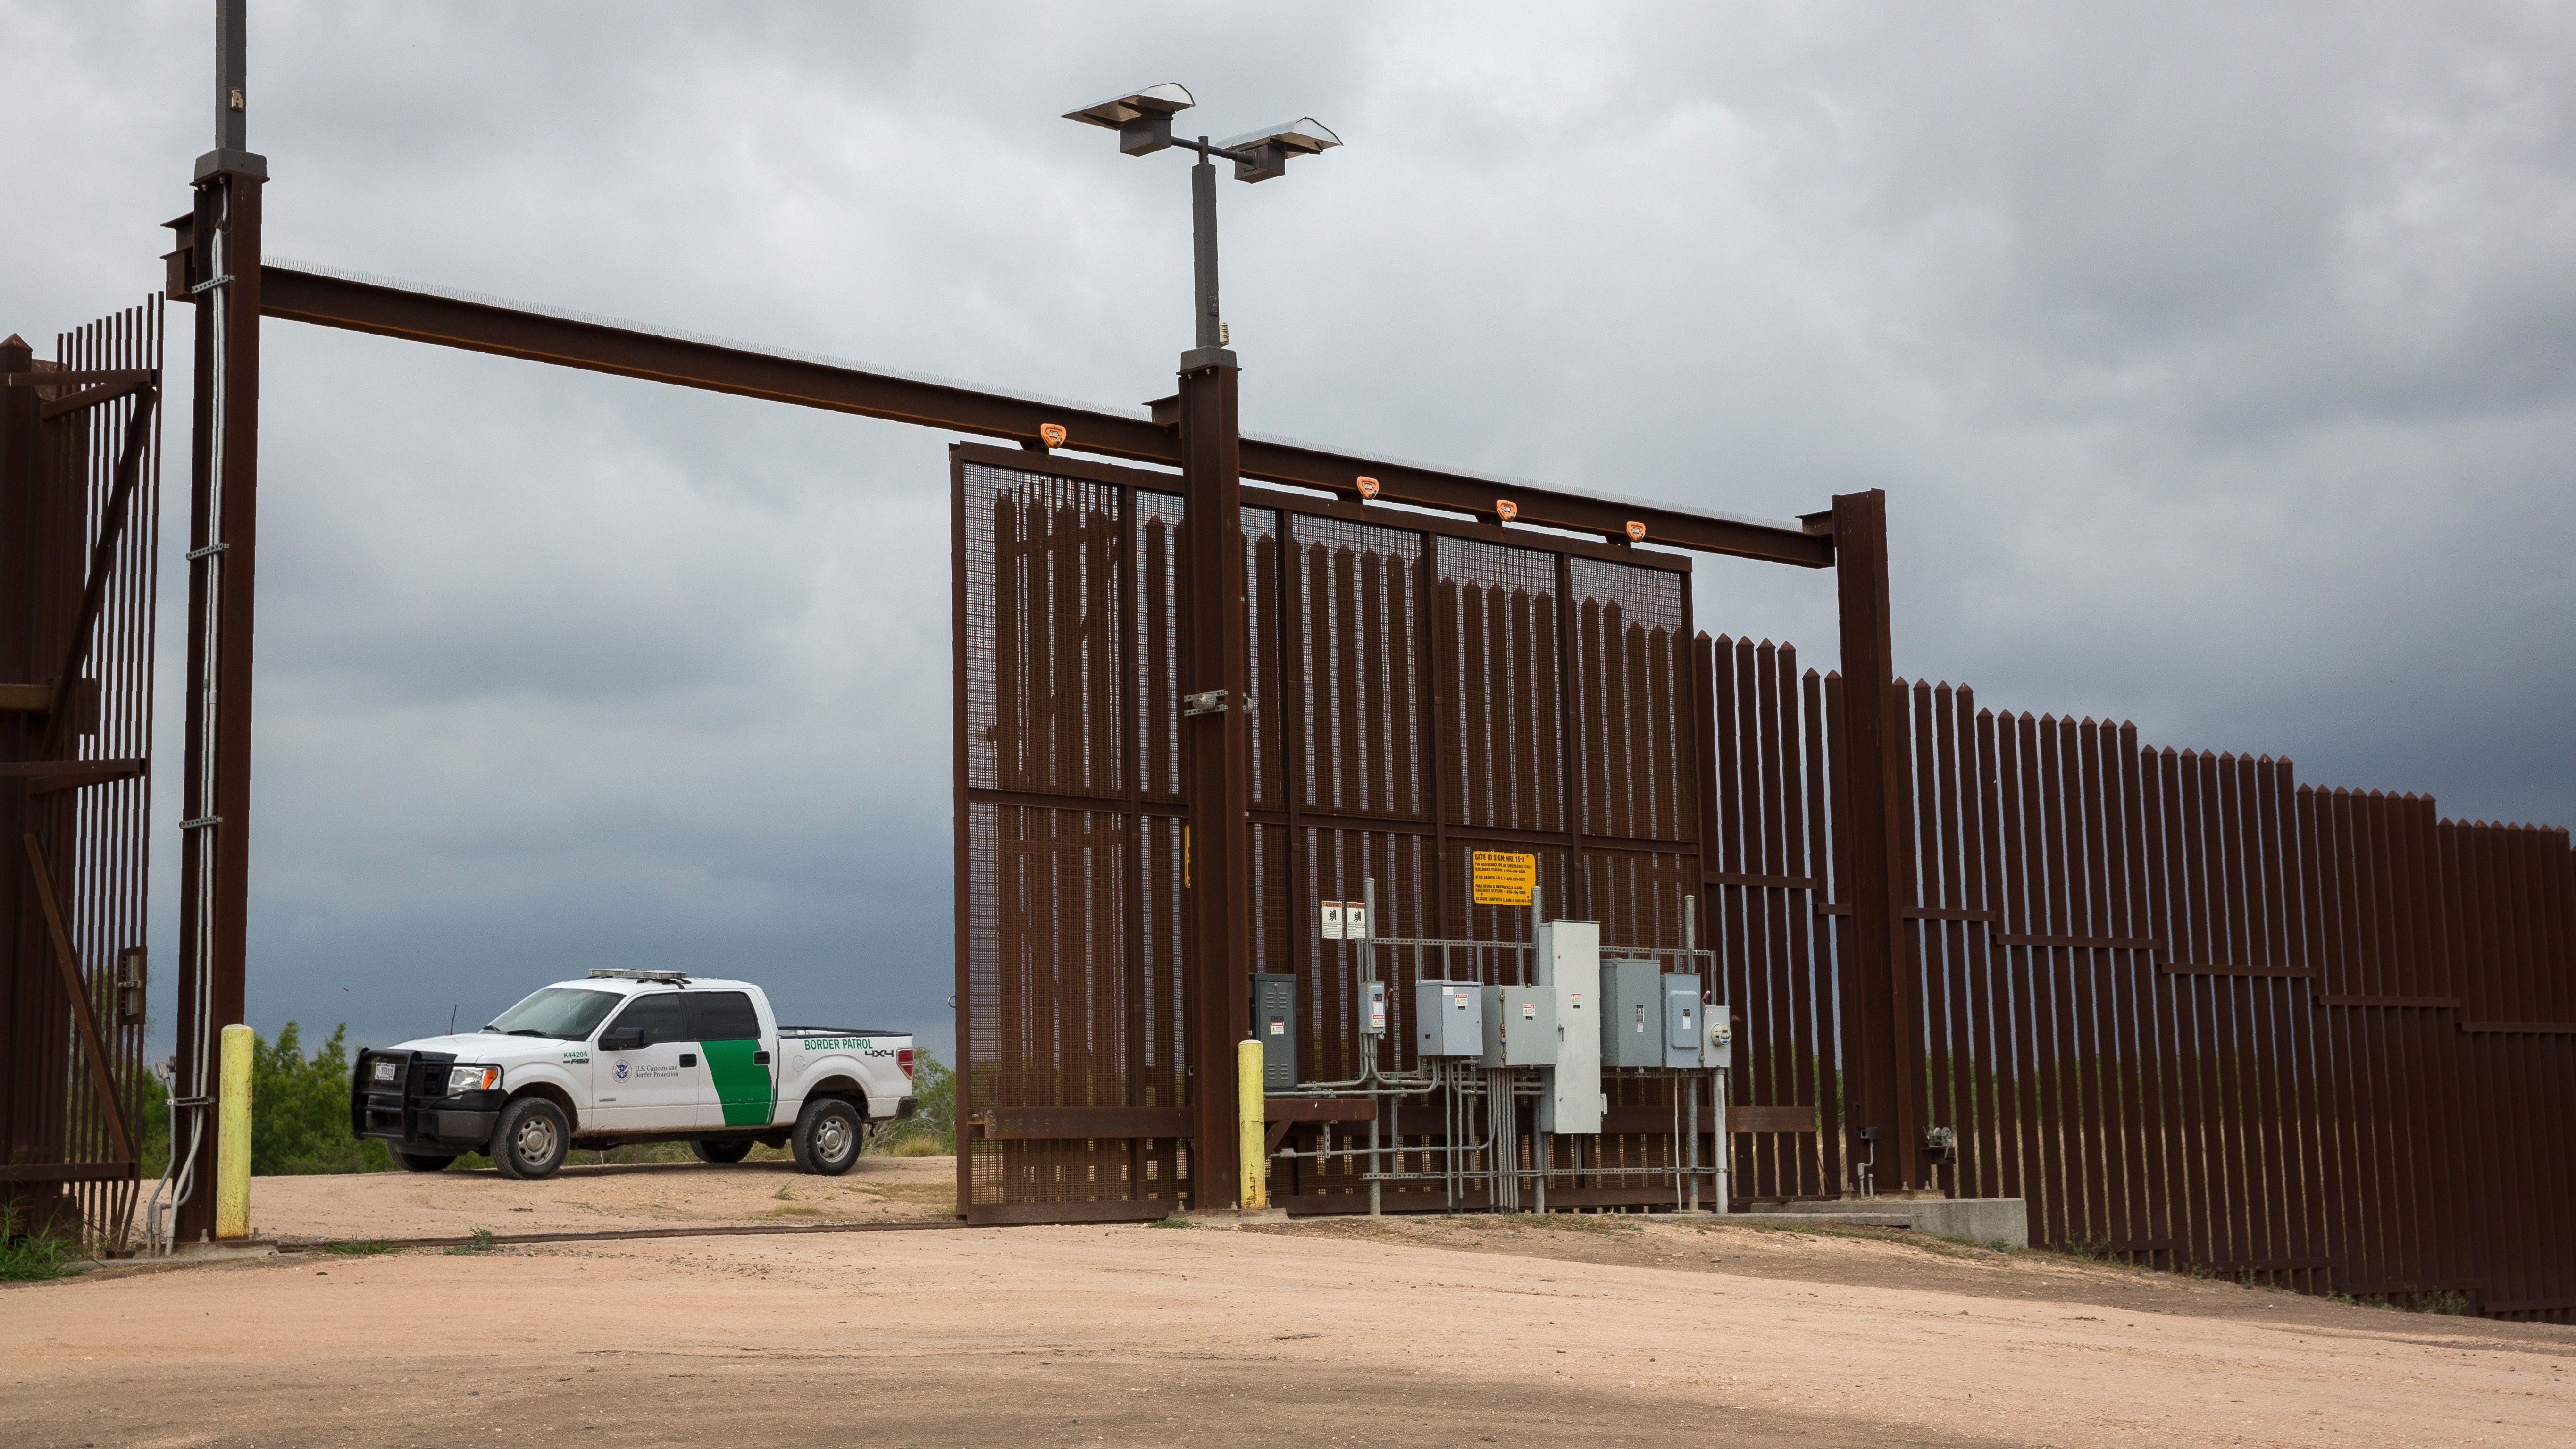 A U.S. Border Patrol agent keeps watch at a gate on the U.S.-Mexico border fence near San Benito, Texas.